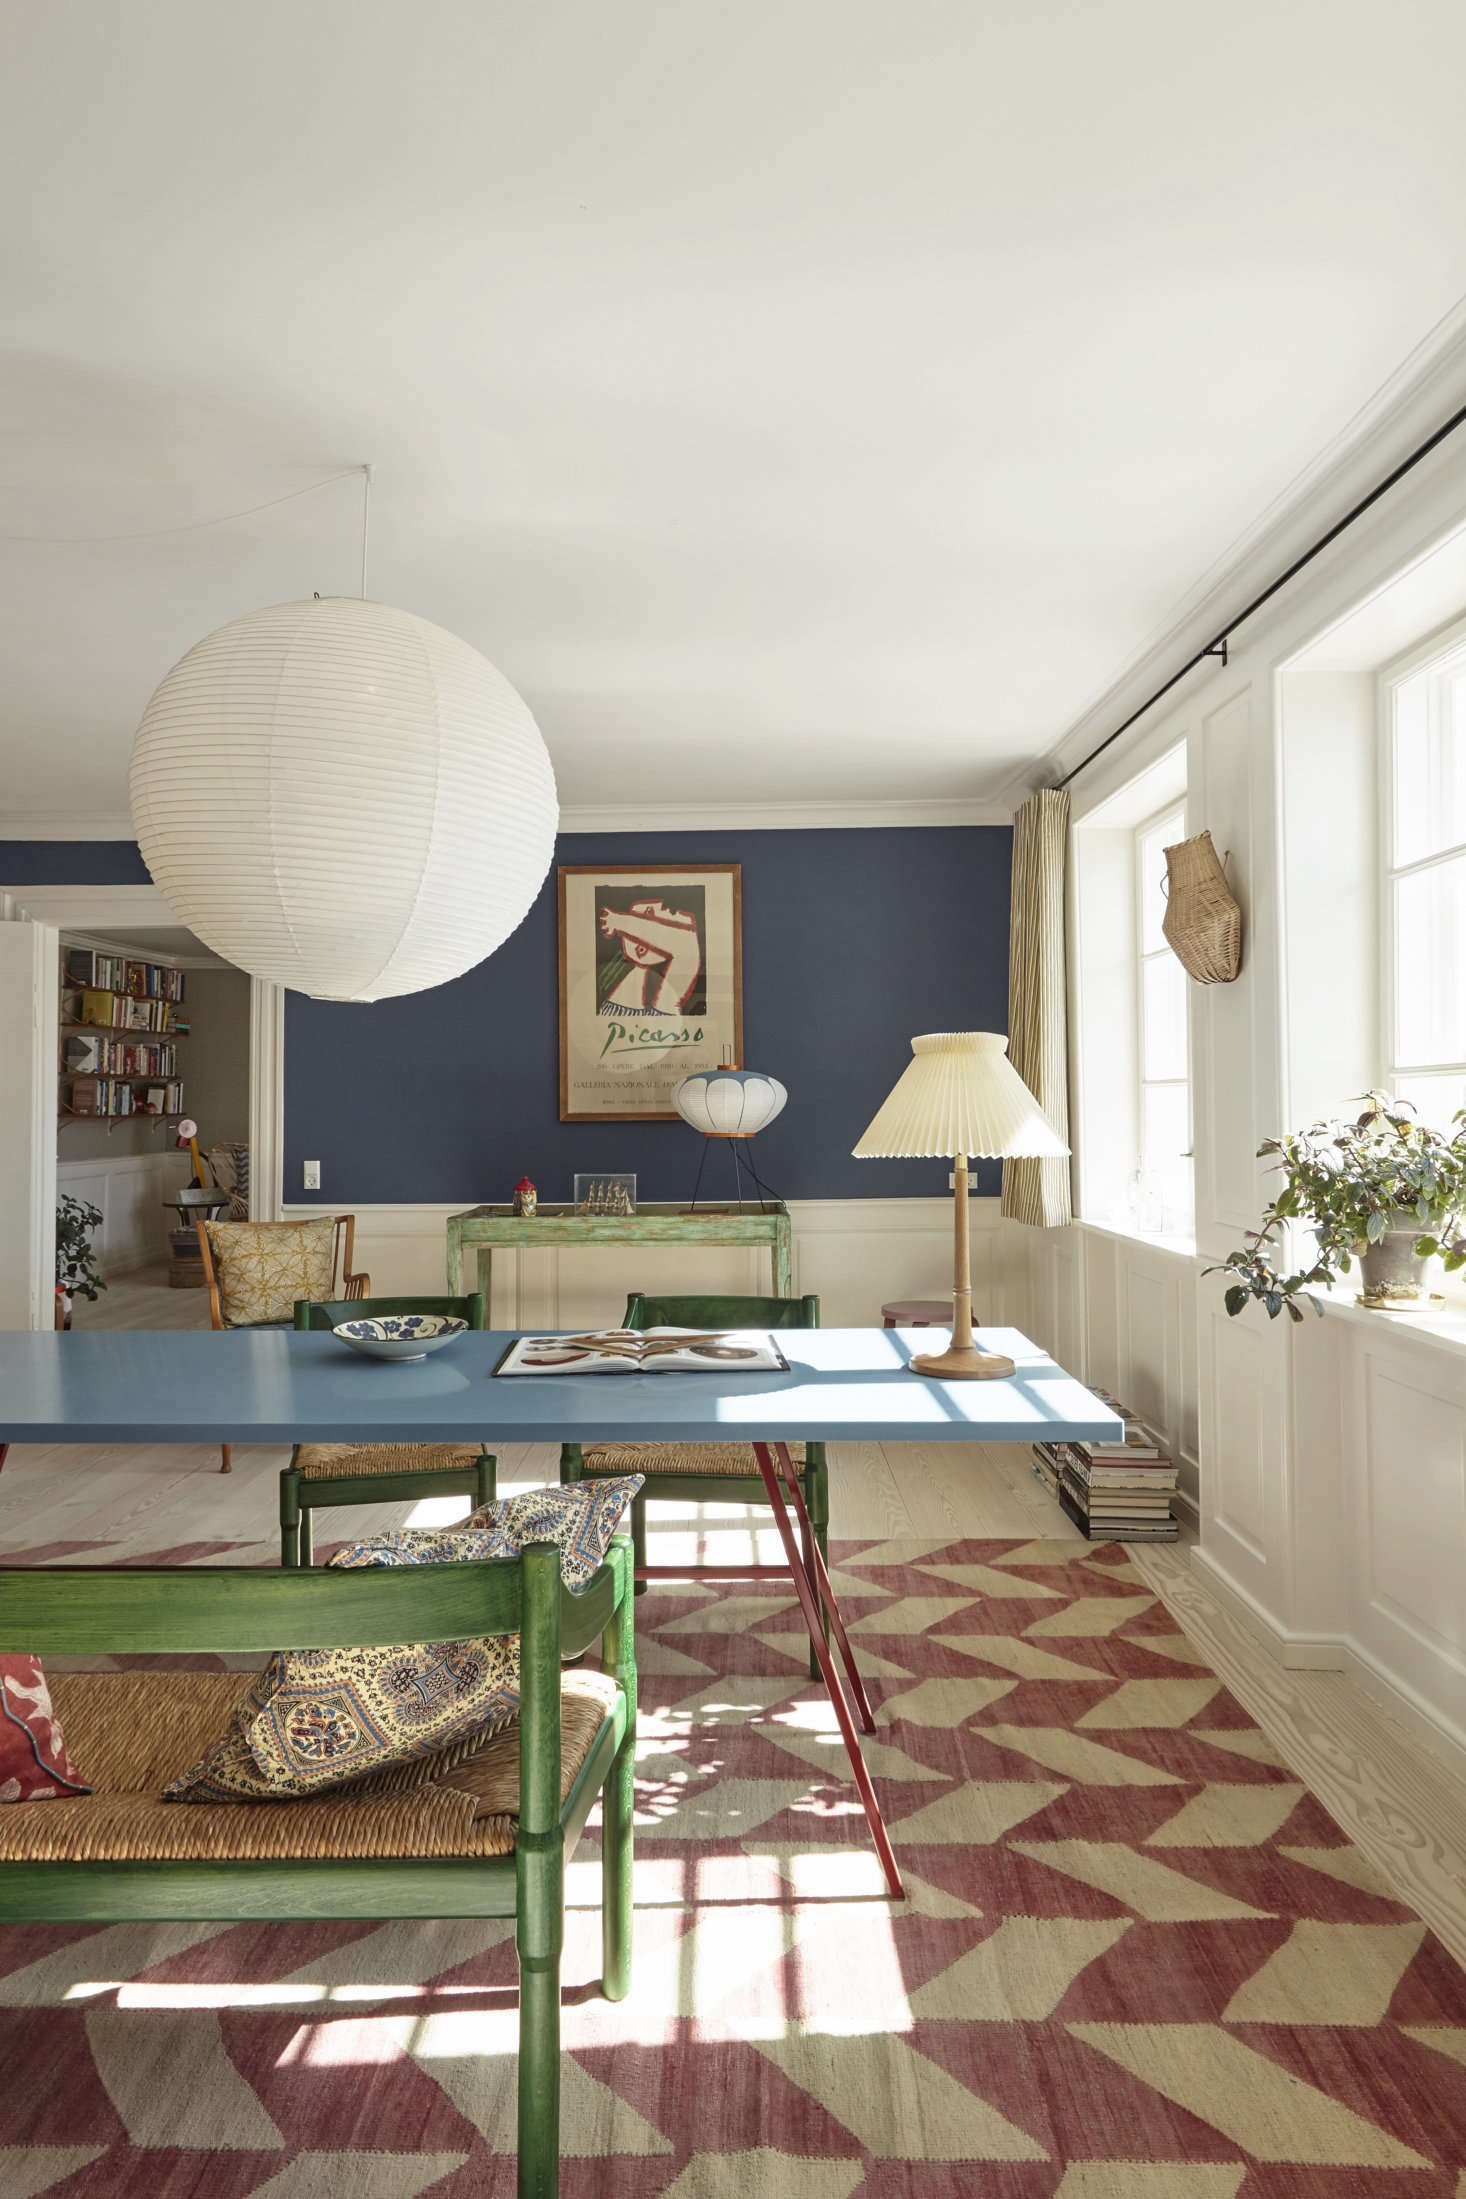 The blue on the walls is Farrow & Ball Drawing Room Blue. The dining chairs are a Vico Magistretti design from 59.